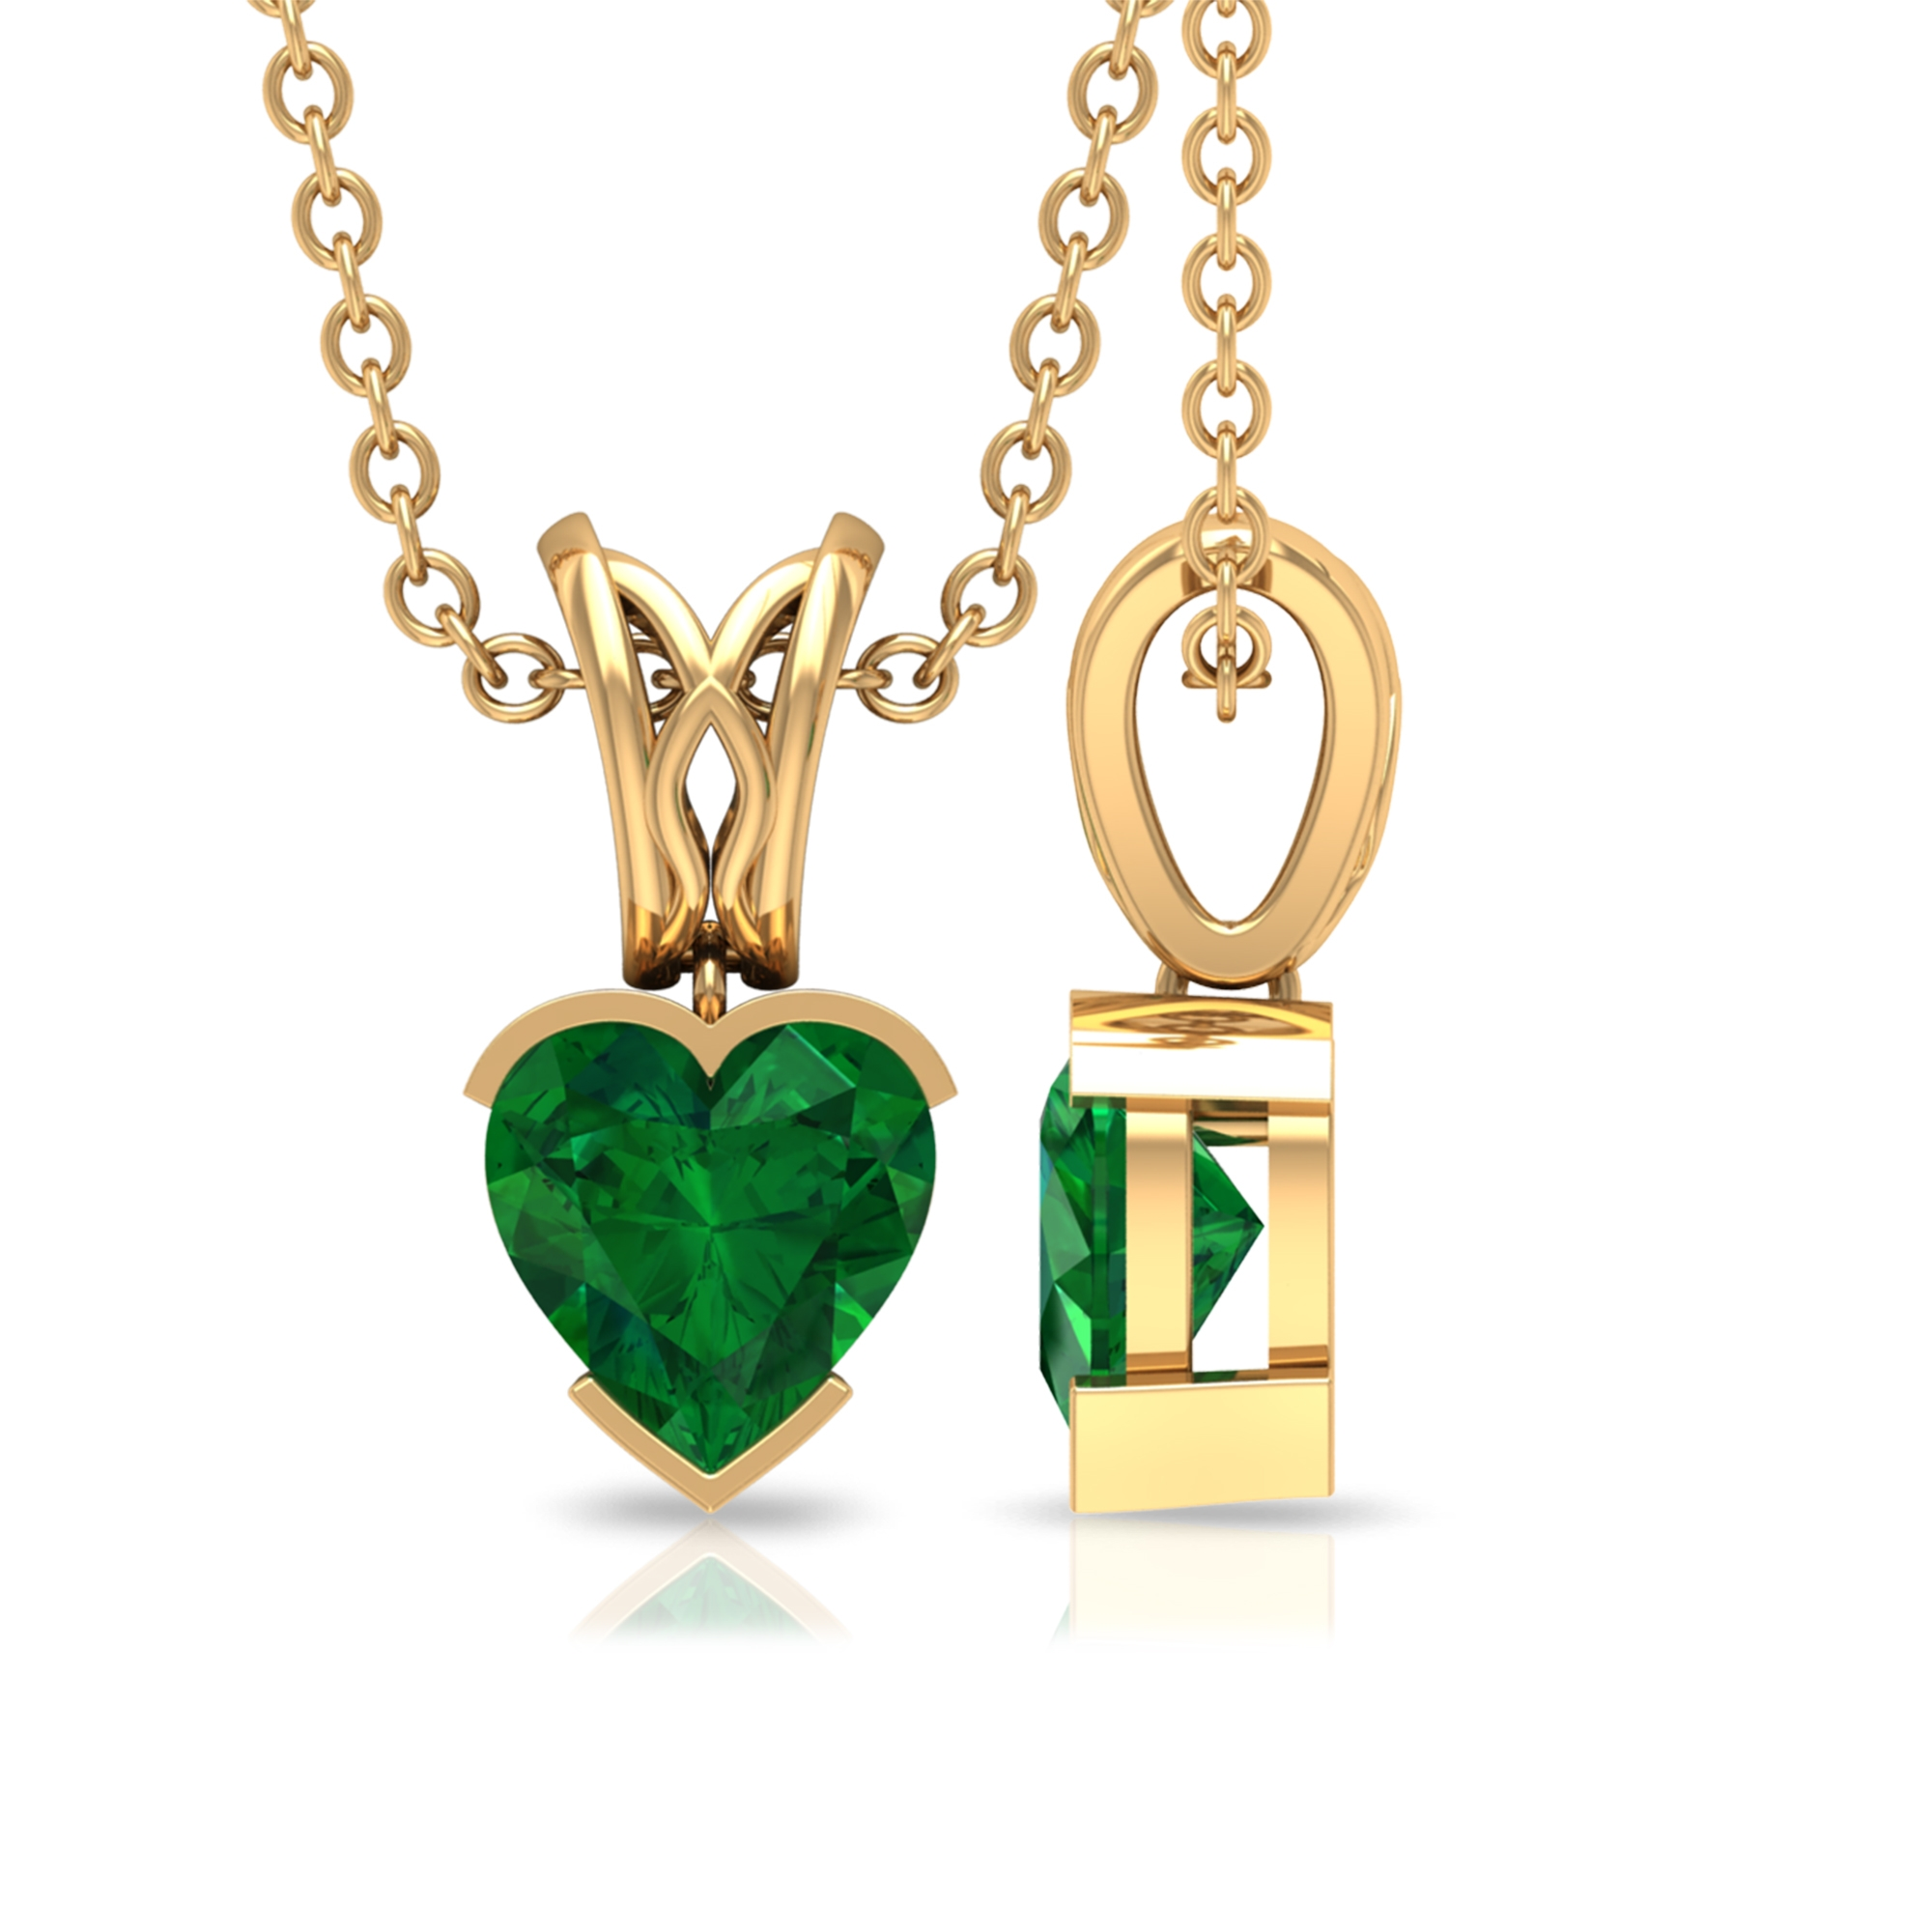 5.40 MM Heart Shape Emerald Solitaire Pendant in Half Bezel Setting with Decorative Bail